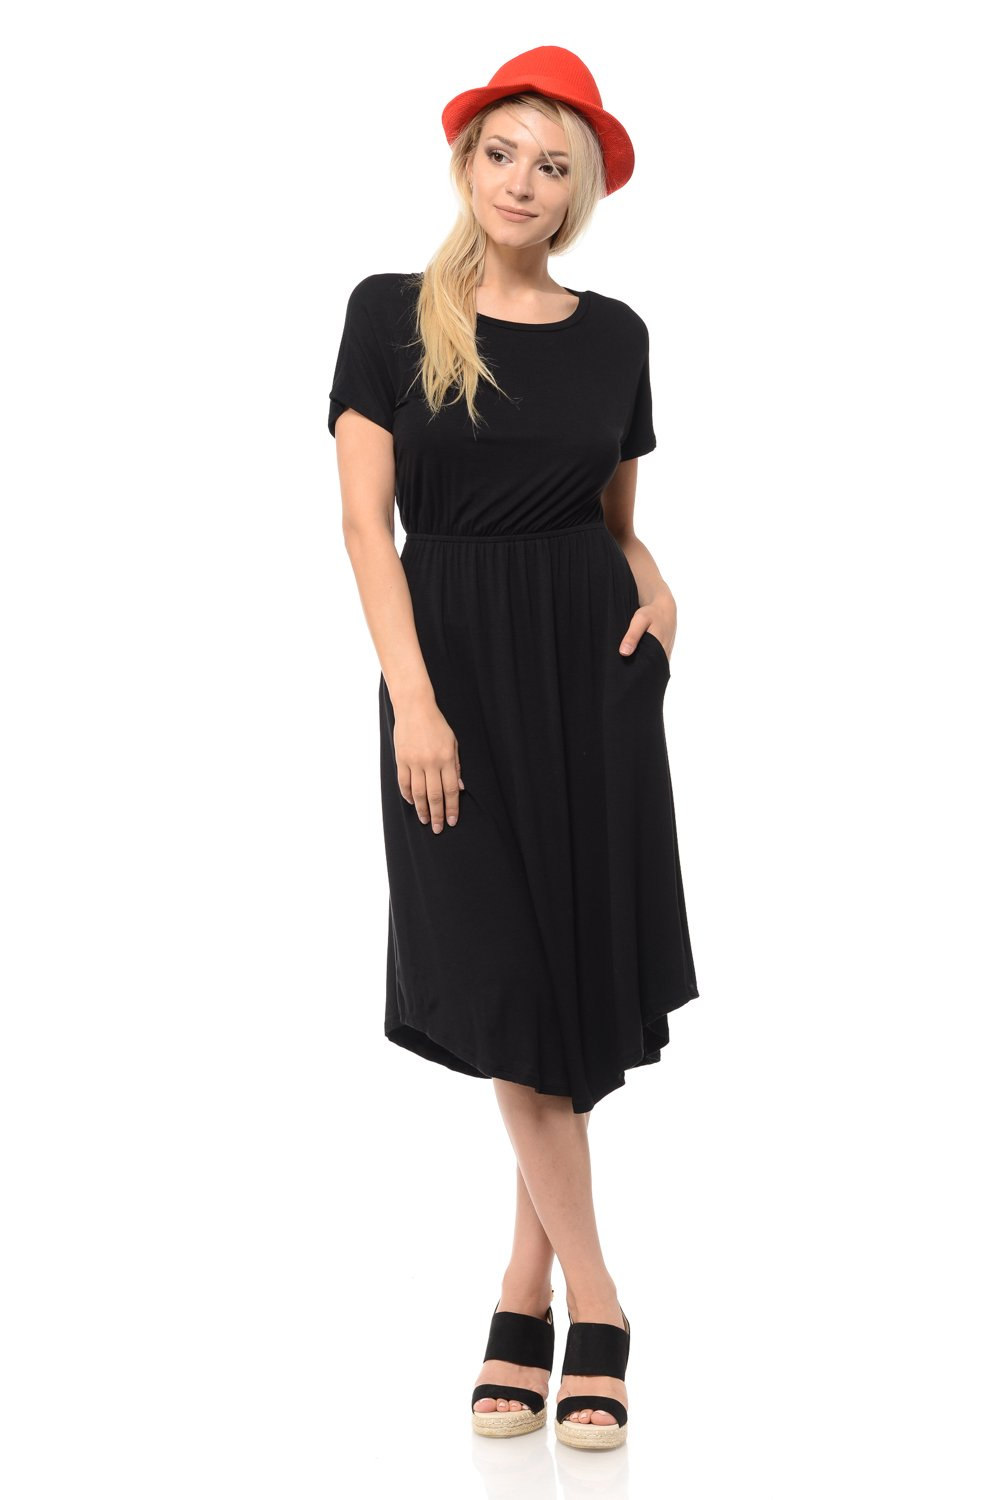 iconic luxe Women's Solid Short Sleeve Flare Midi Dress Pockets Large Black